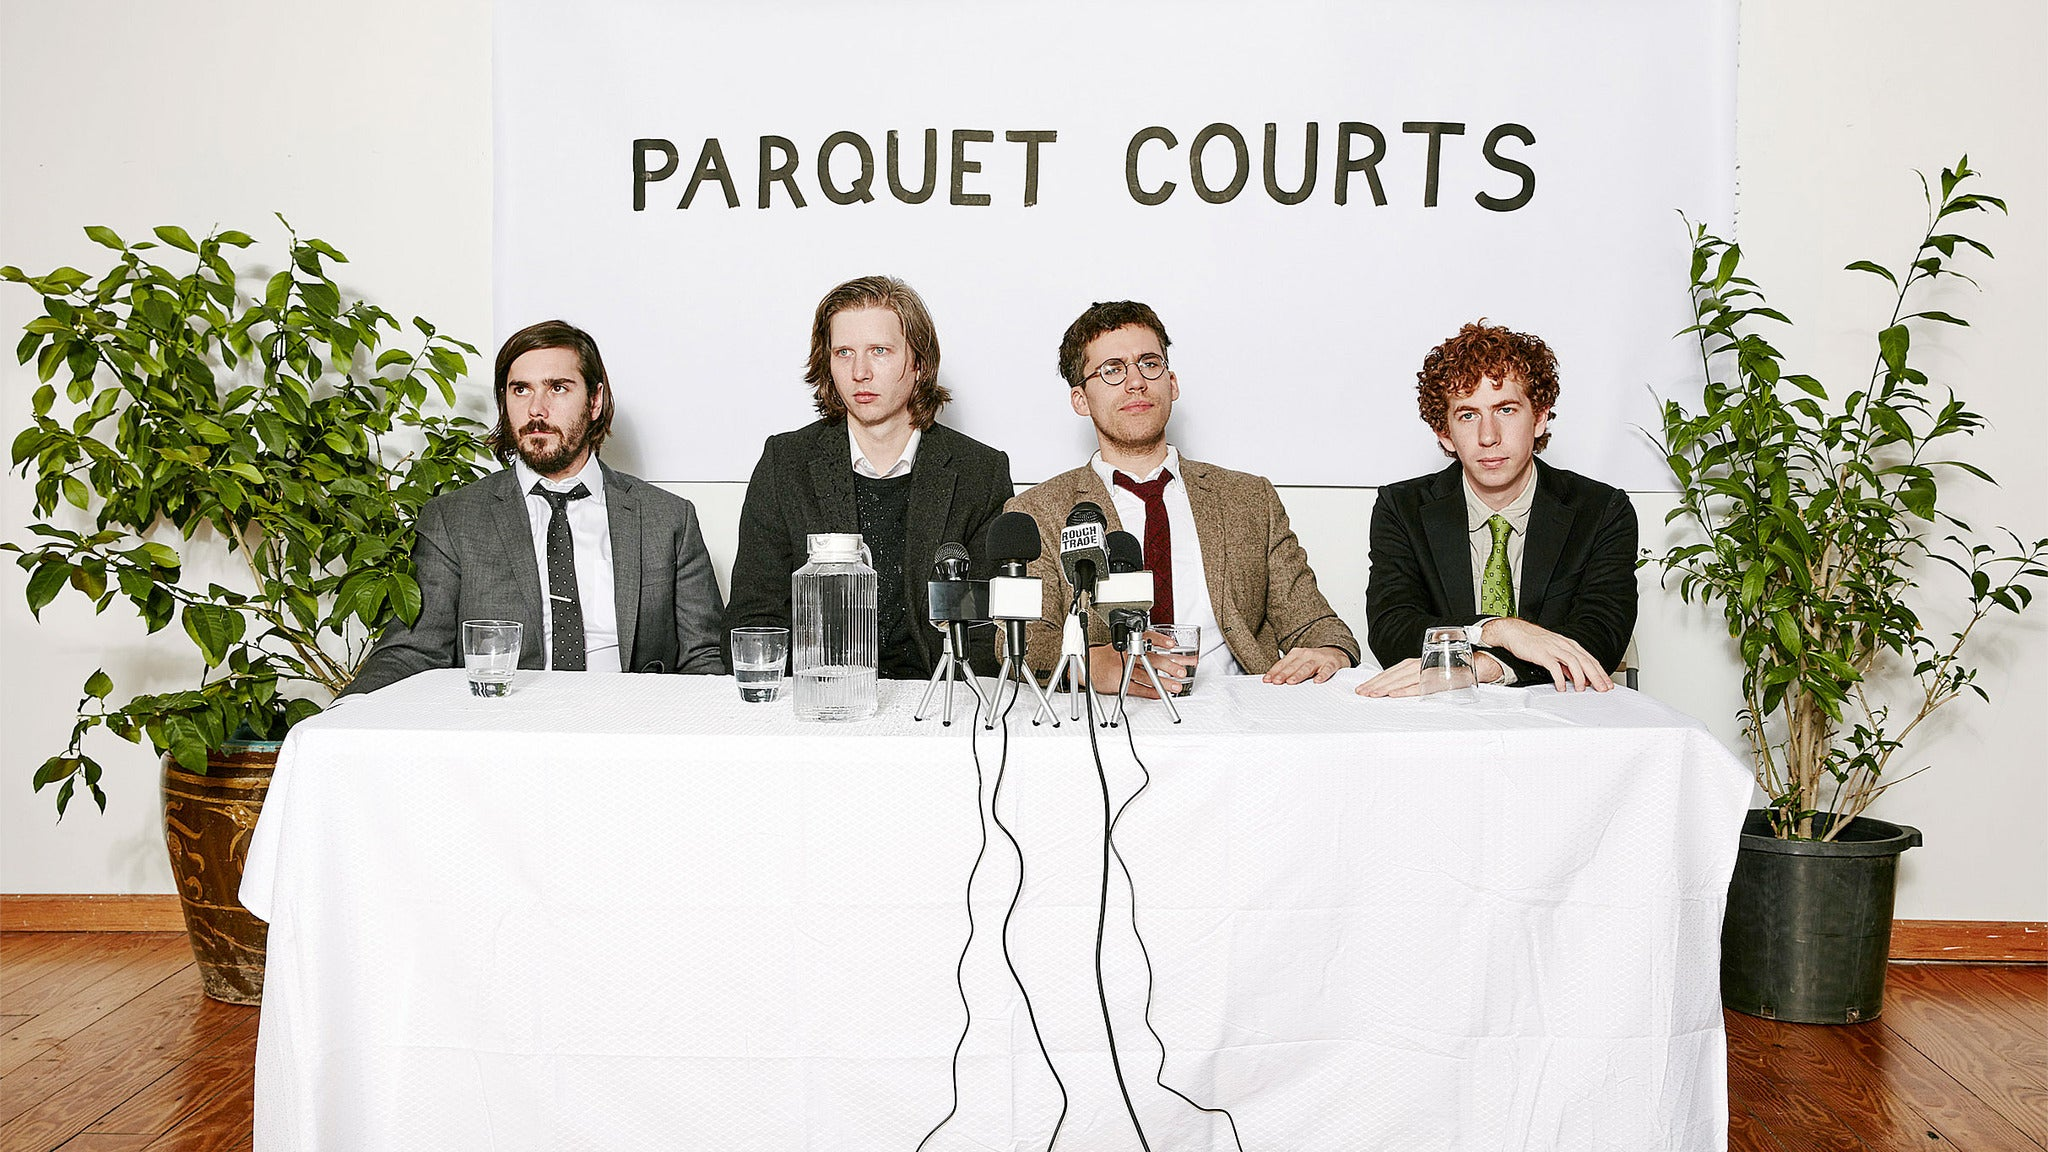 Parquet Courts presale passcode for early tickets in Philadelphia